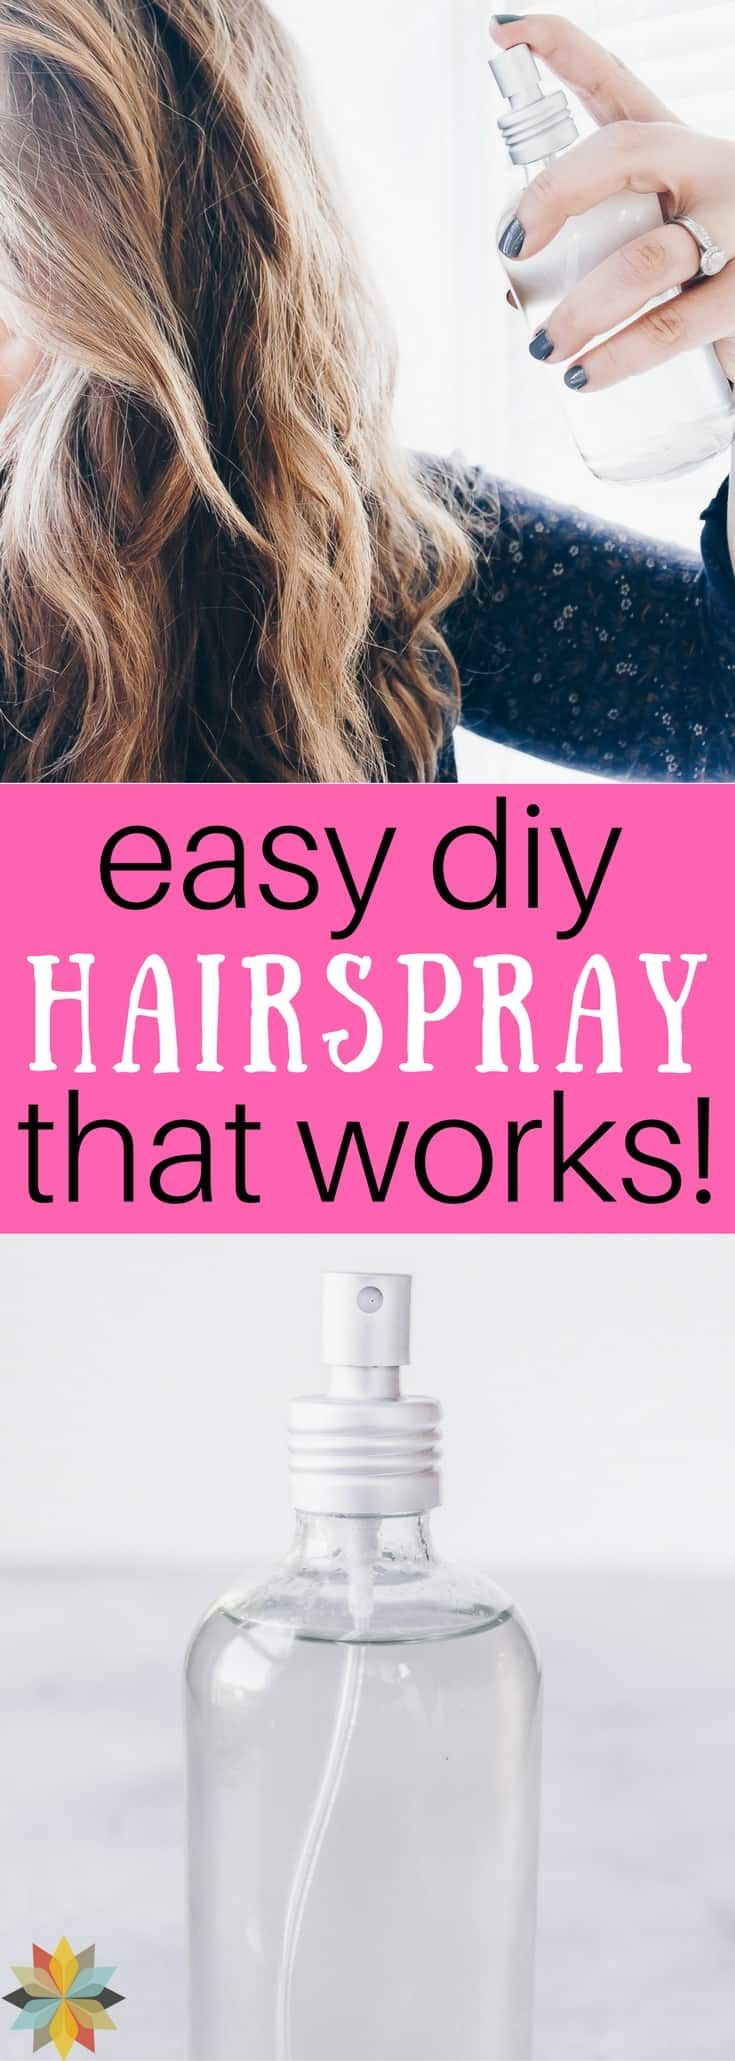 Easy DIY Hairspray that works! is part of Diy hair spray - This Homemade Hair Spray has only 3 ingredients, works great, and is toxin free!